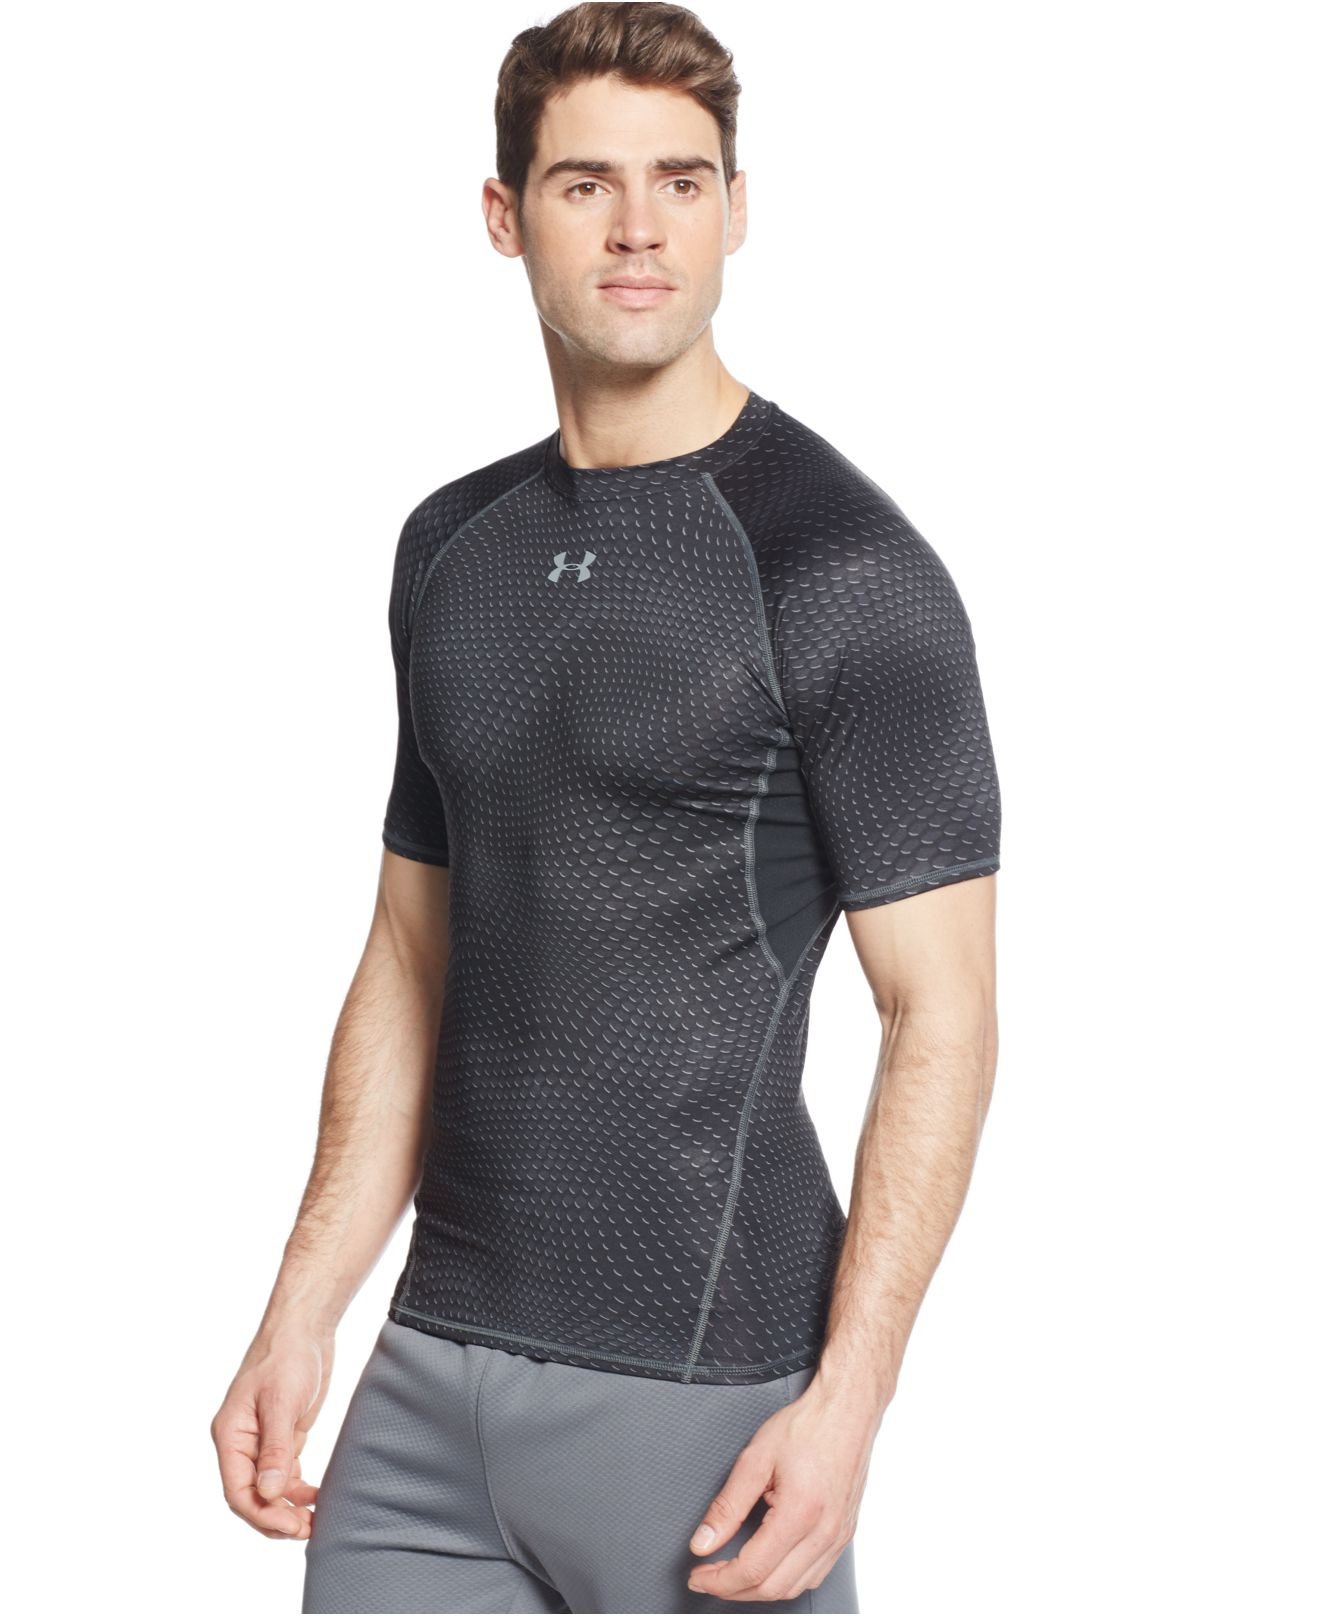 Under armour printed heatgear compression t shirt in black for Compressed promotional t shirts